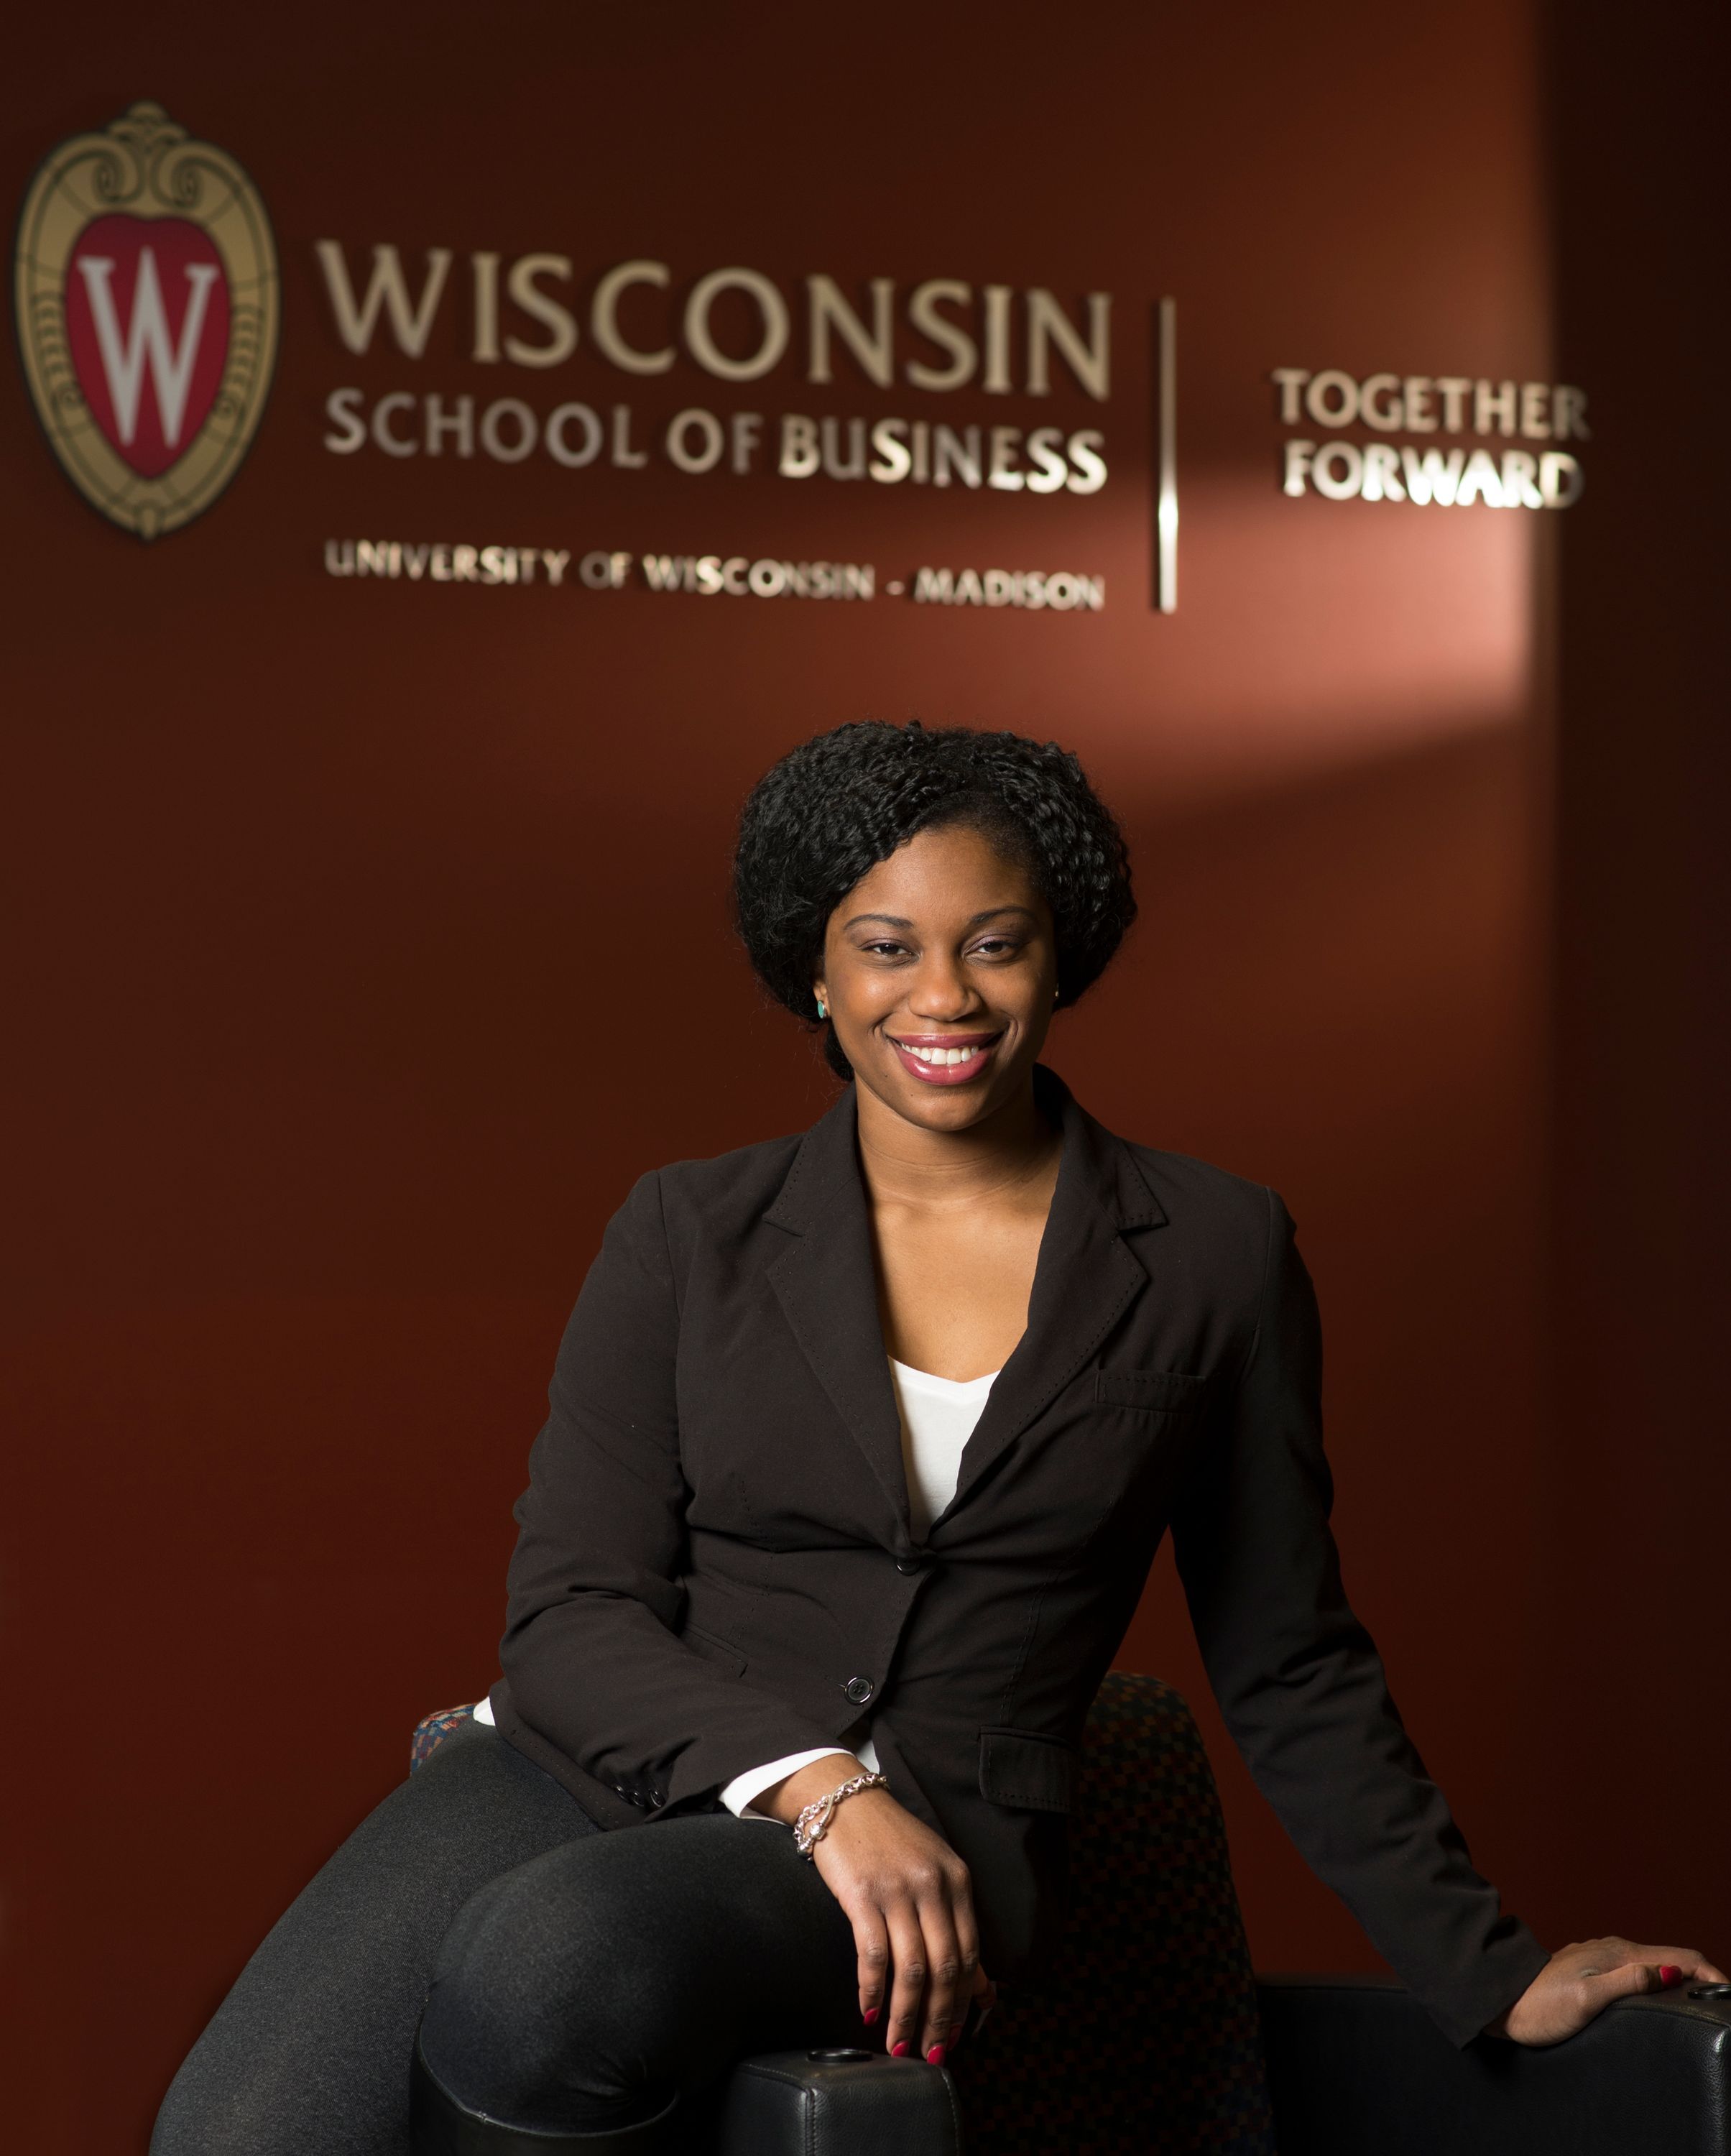 Full-time MBA Student Zena Stephens